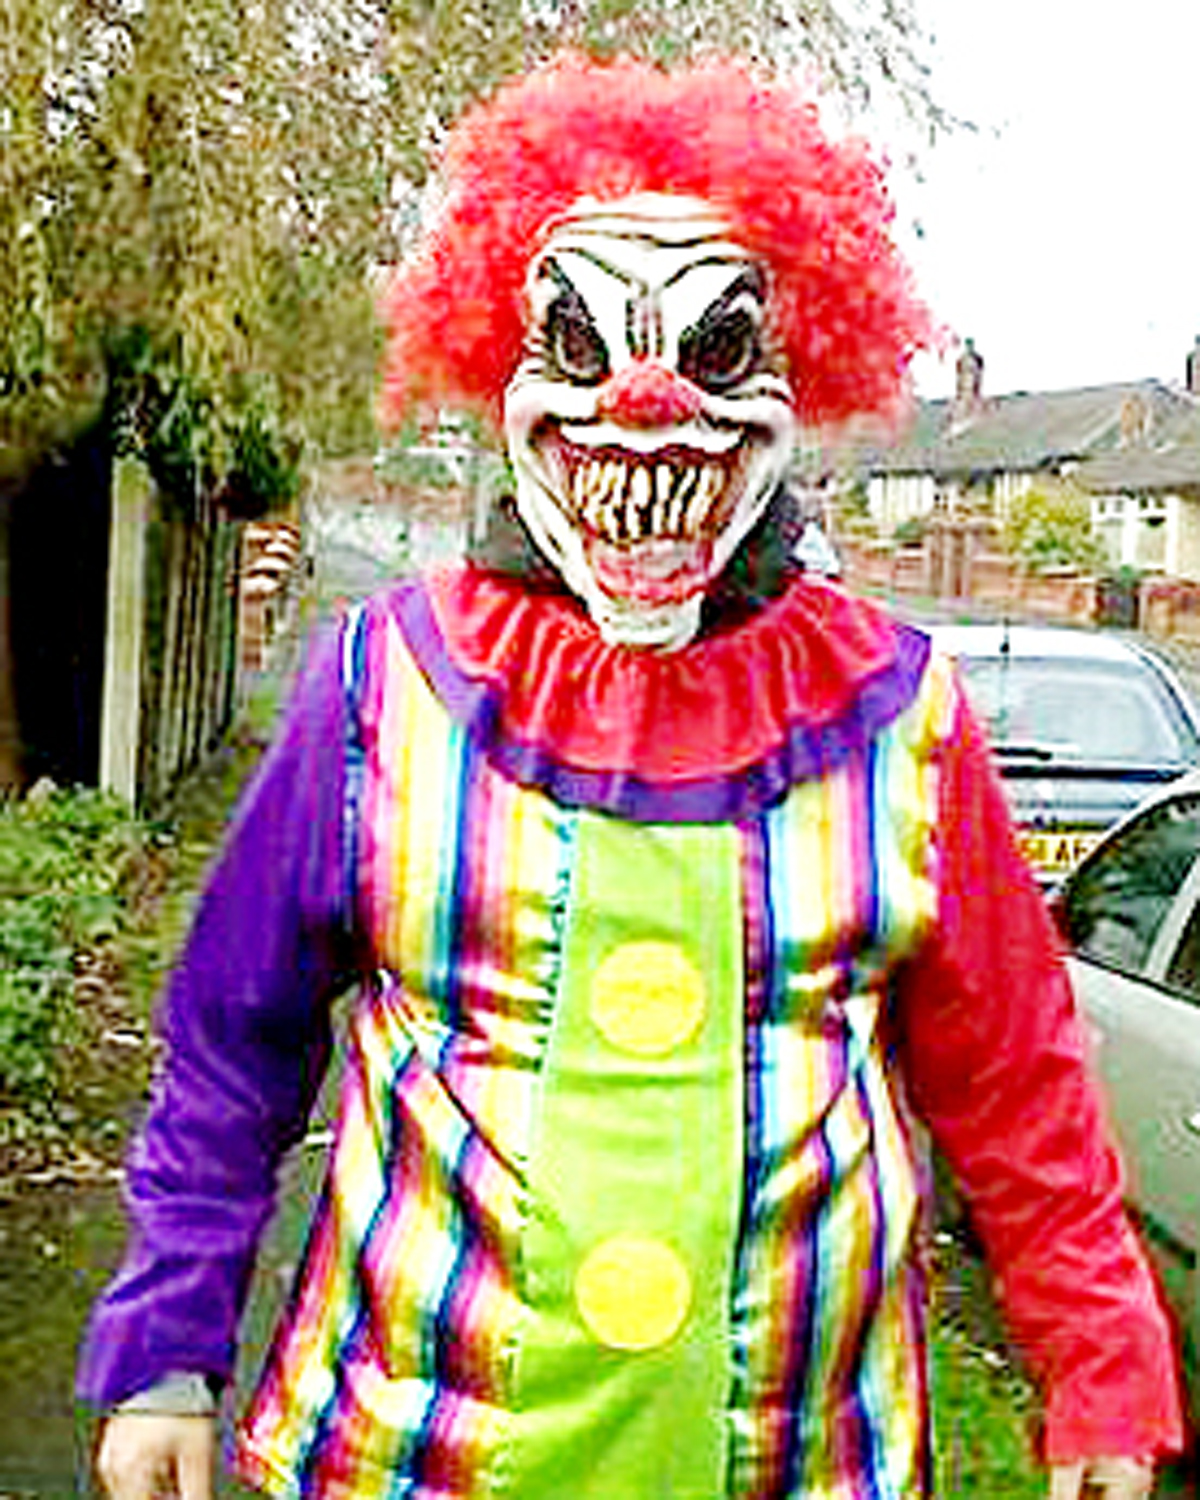 Kidnapping clown rumours in Haslingden are false say police